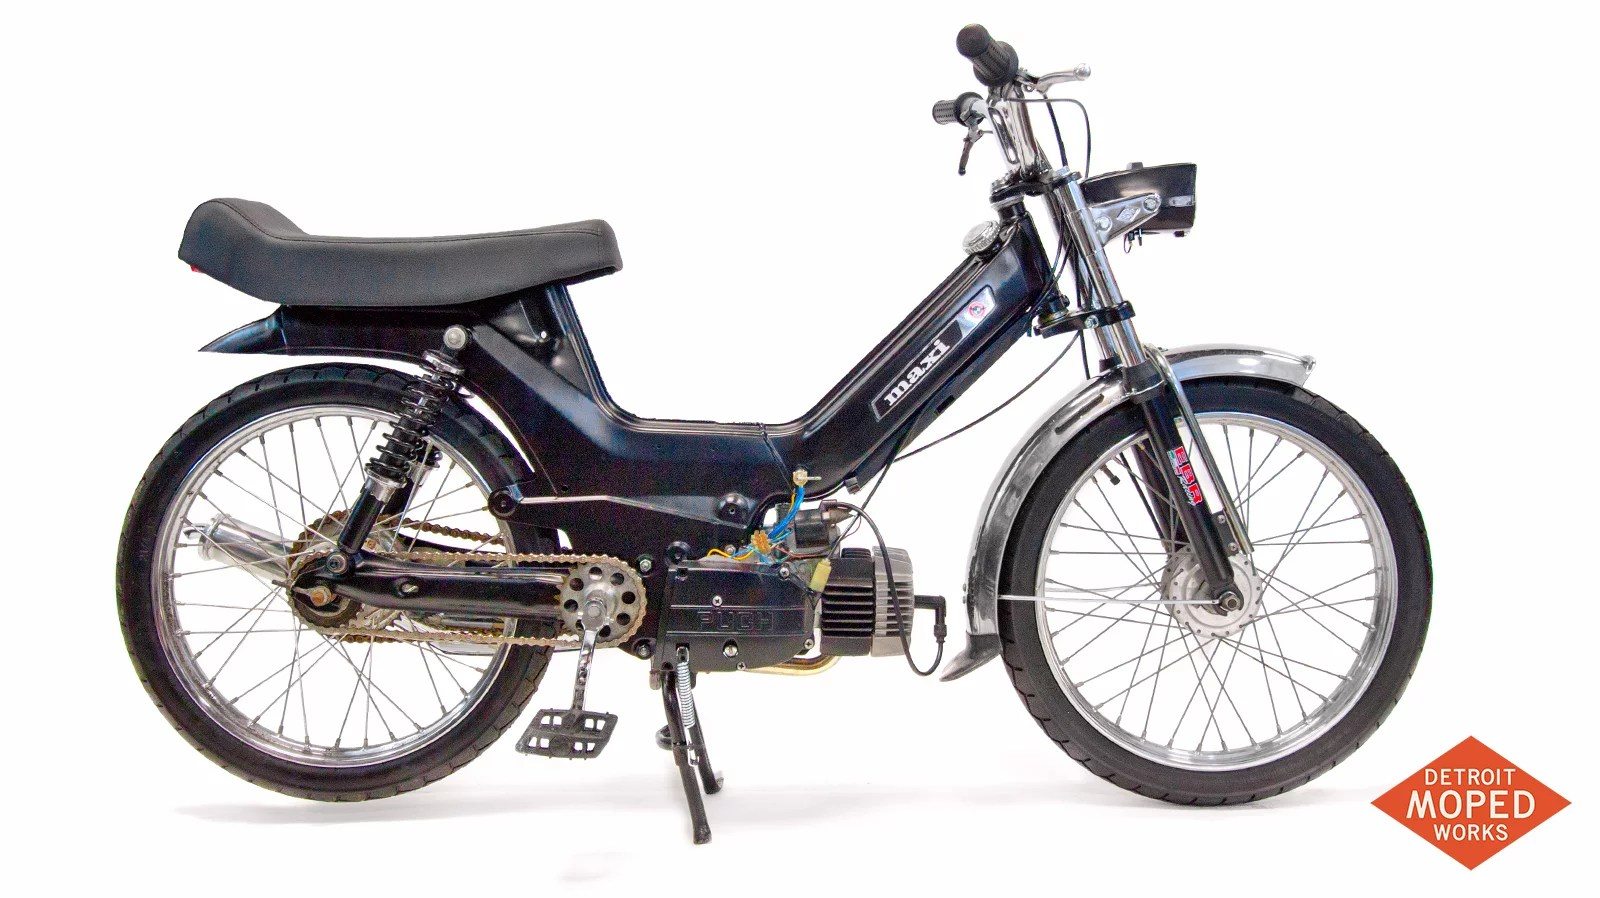 Custom black Puch Maxi E50 with long seat from Detroit Moped Works